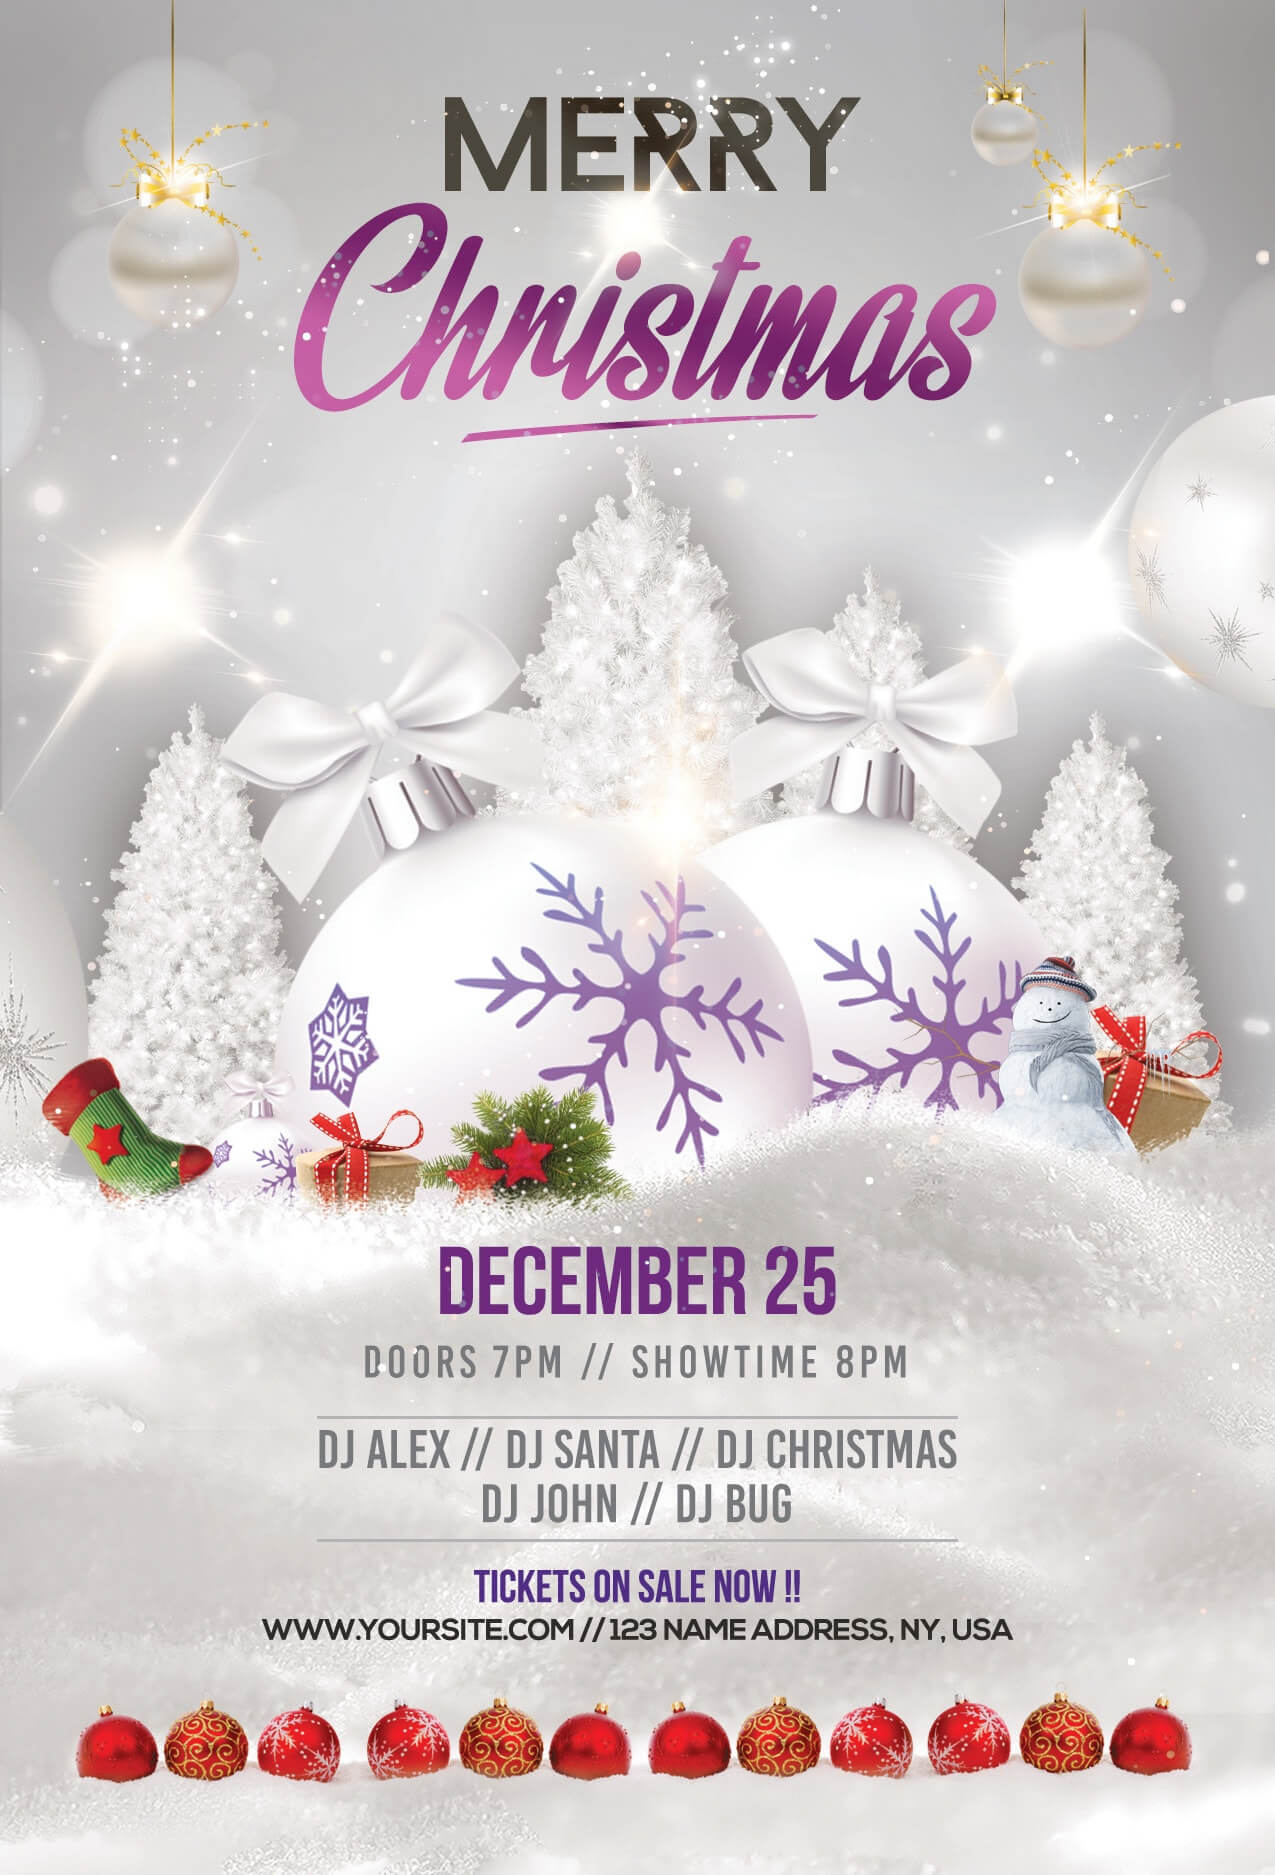 Merry Christmas & Holiday Free Psd Flyer Template - Free Psd throughout Christmas Brochure Templates Free